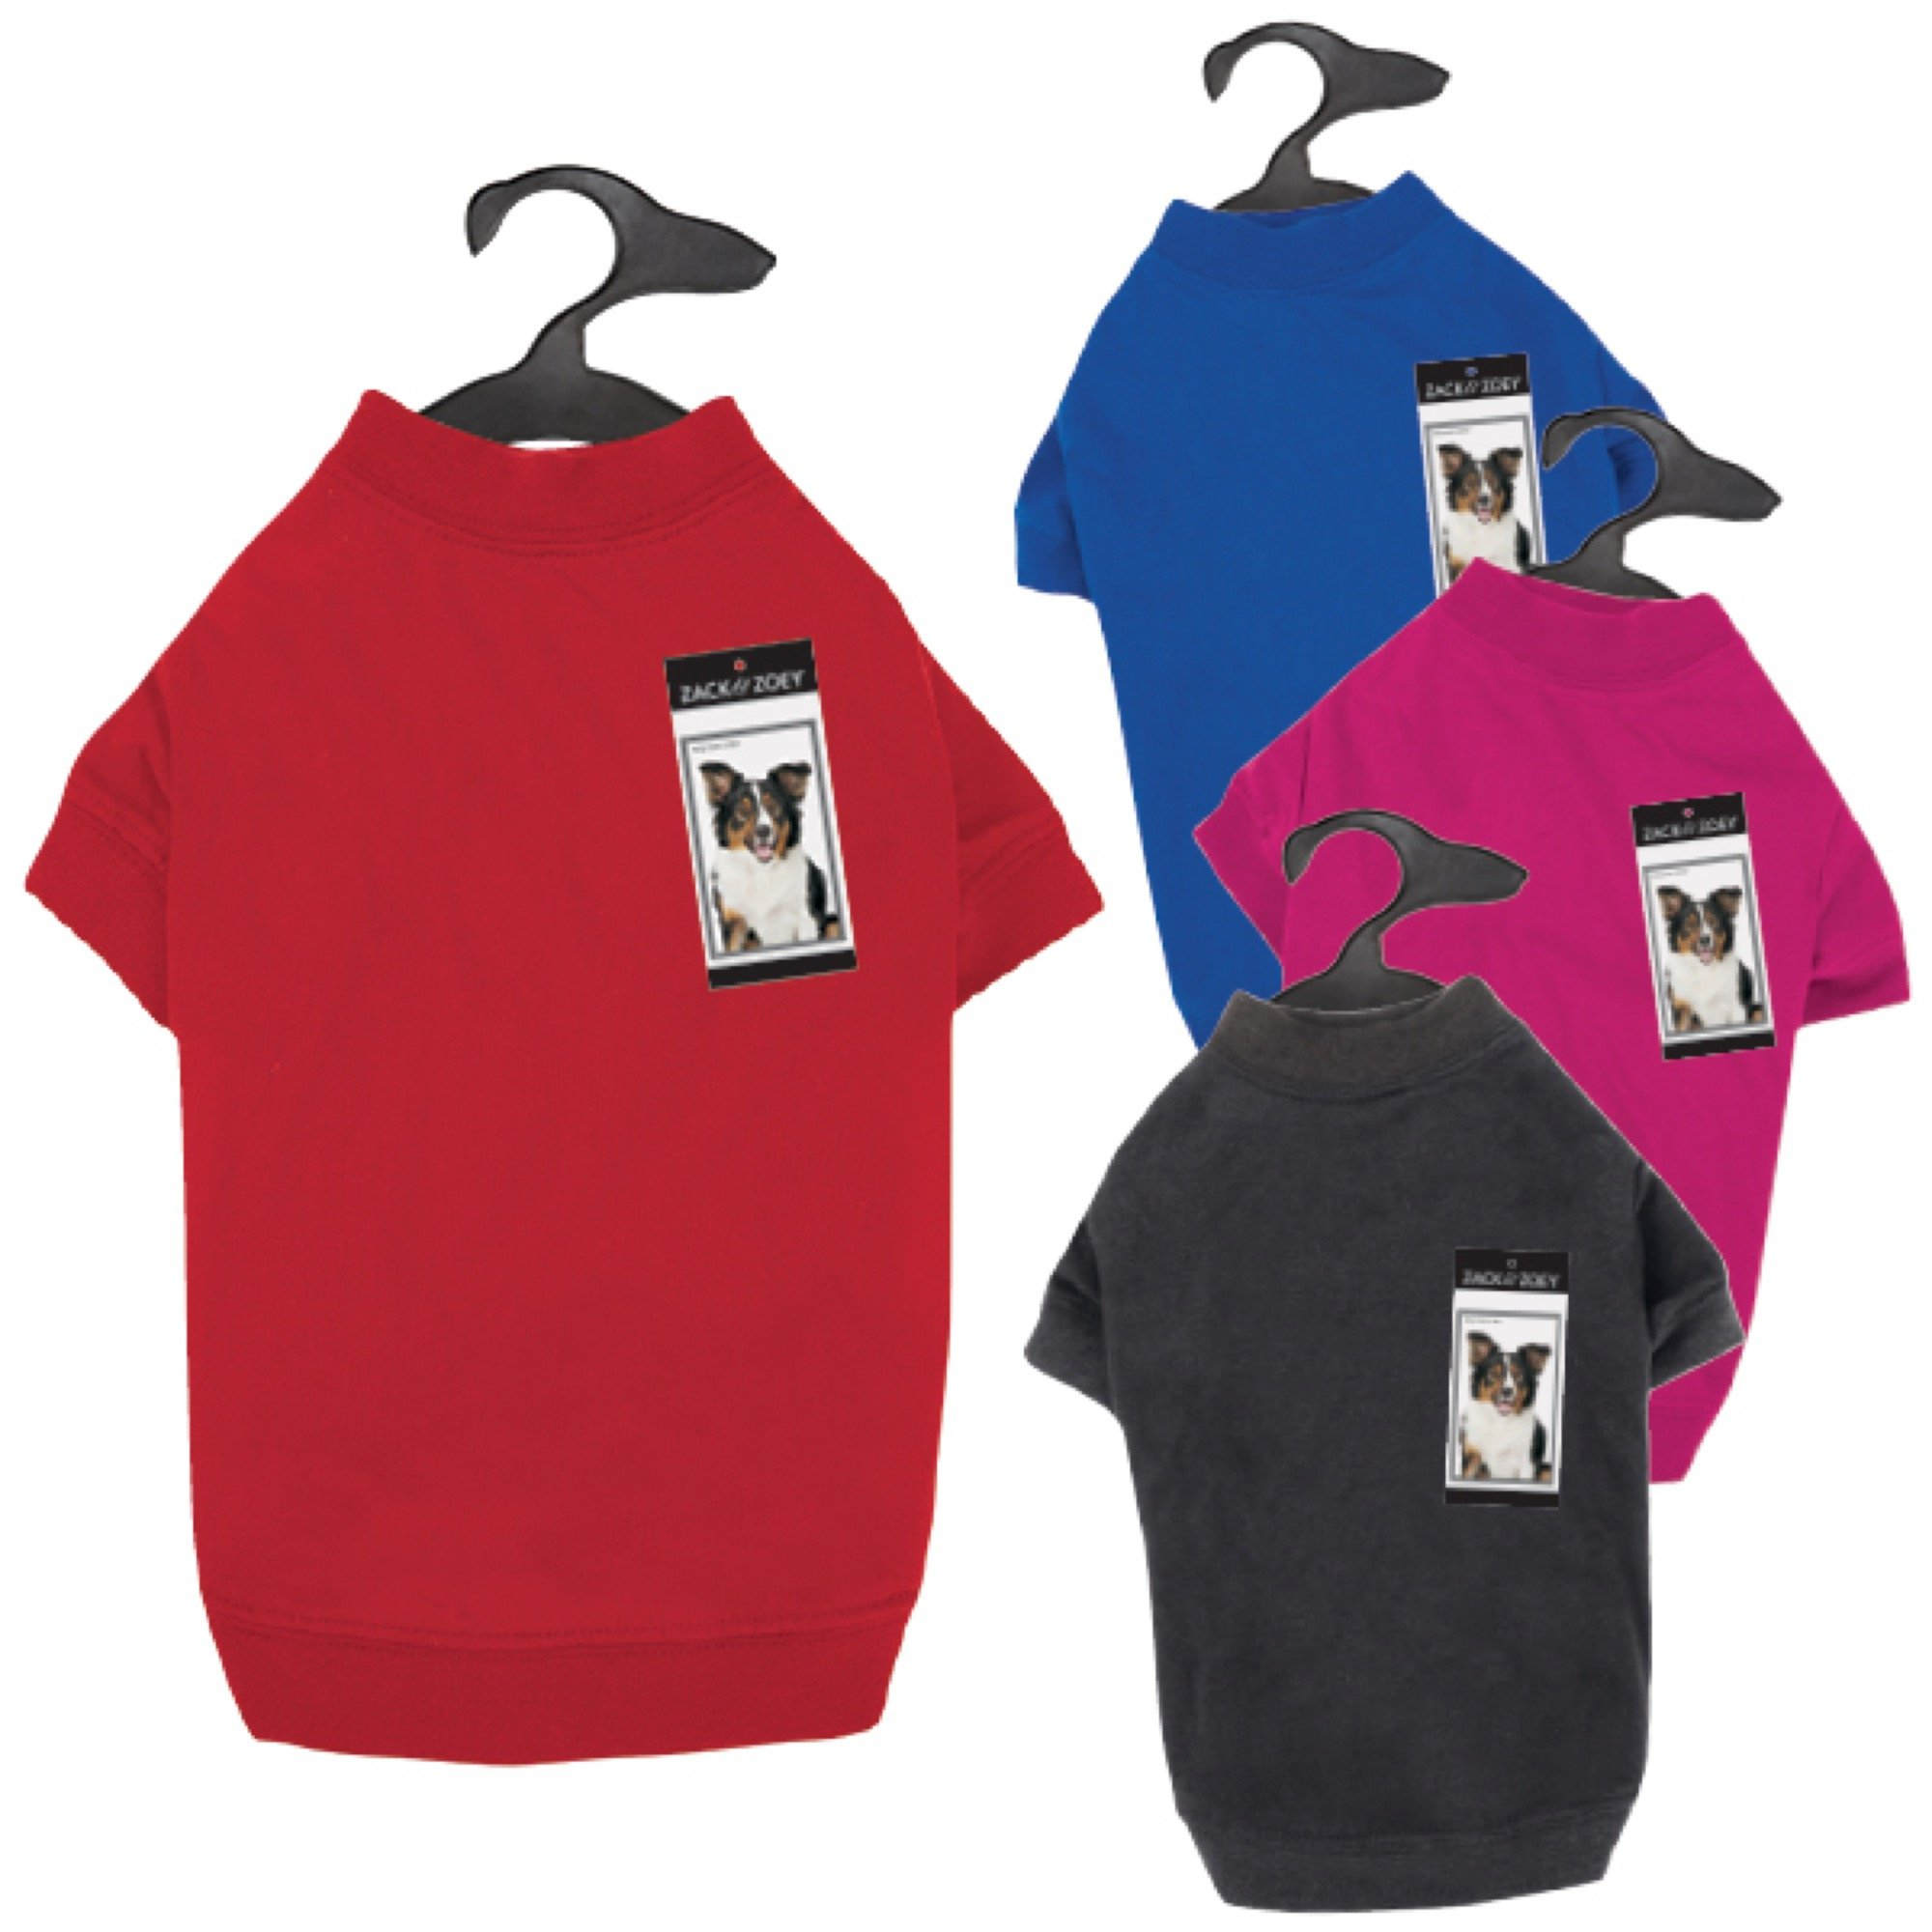 Zack & Zoey Basic Tee Shirt for Dogs, 20'' Large, Black by Zack & Zoey (Image #4)